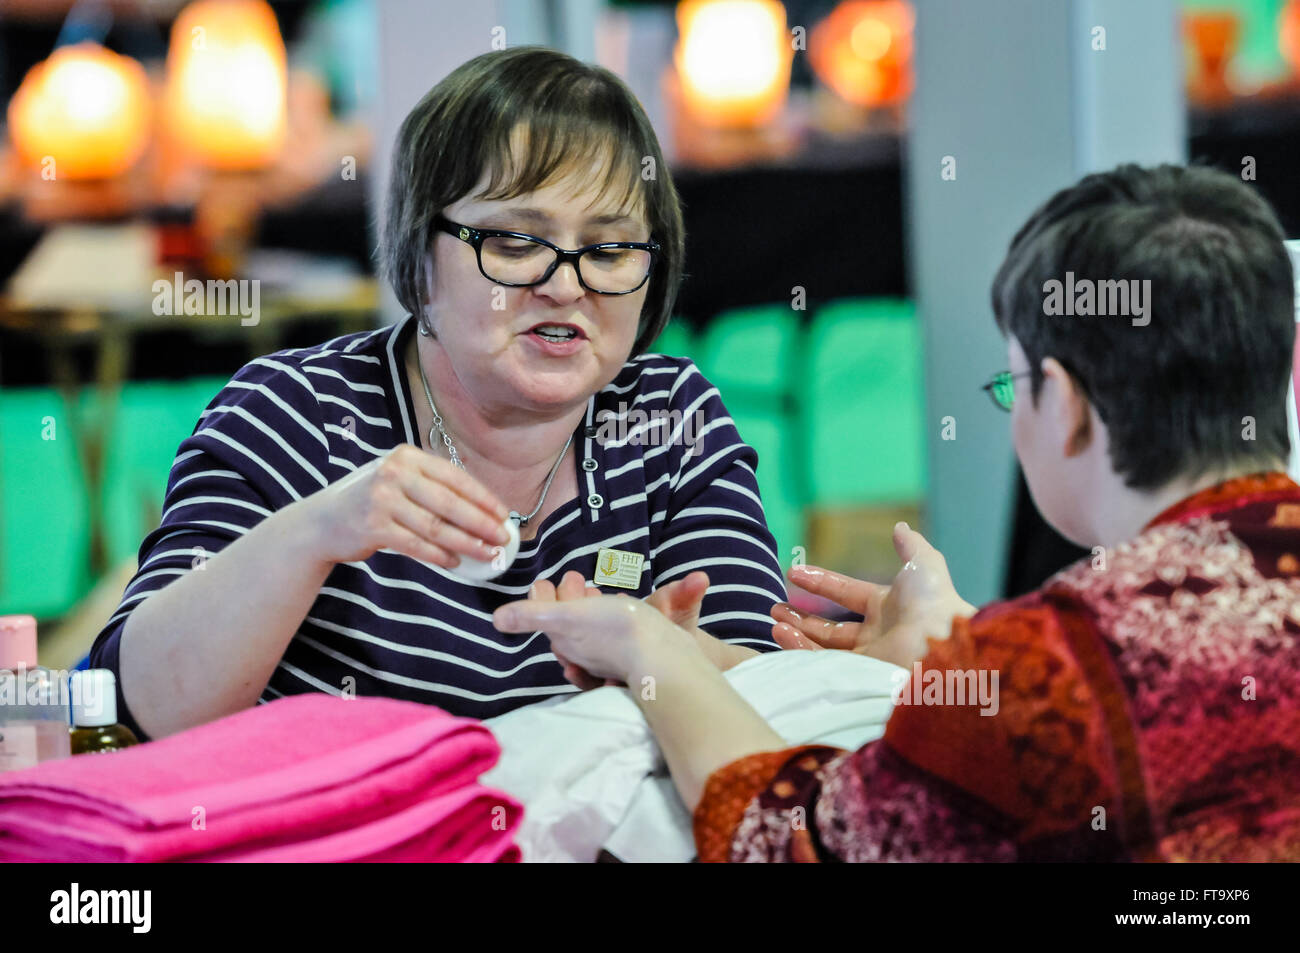 An aromatherapist applies oils to the hands of a patient at a holistic and spiritual fair - Stock Image